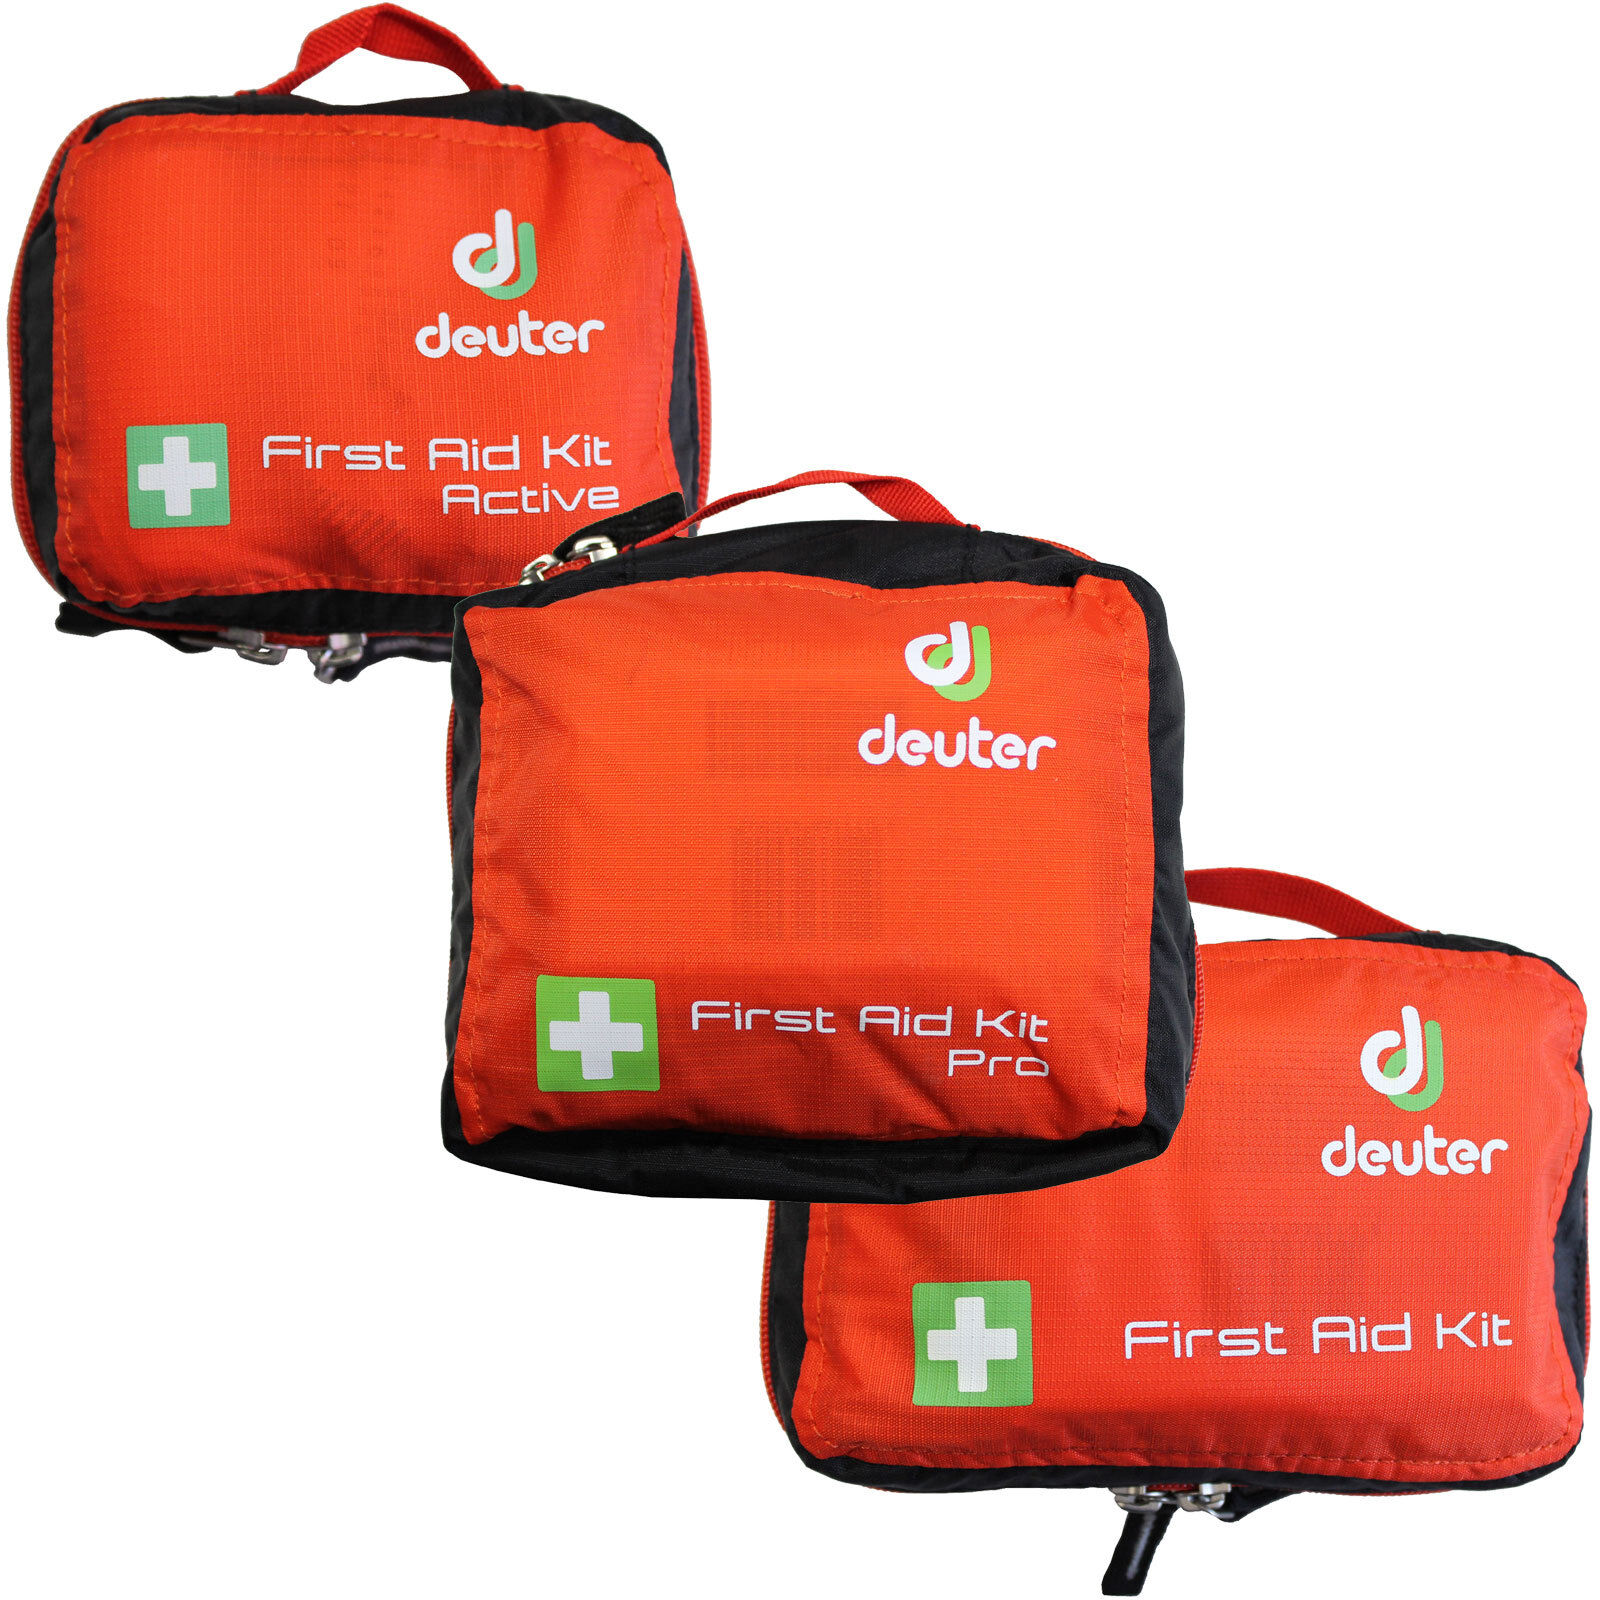 Deuter First Aid Kit First Aid Kit First Aid Kit Basic New